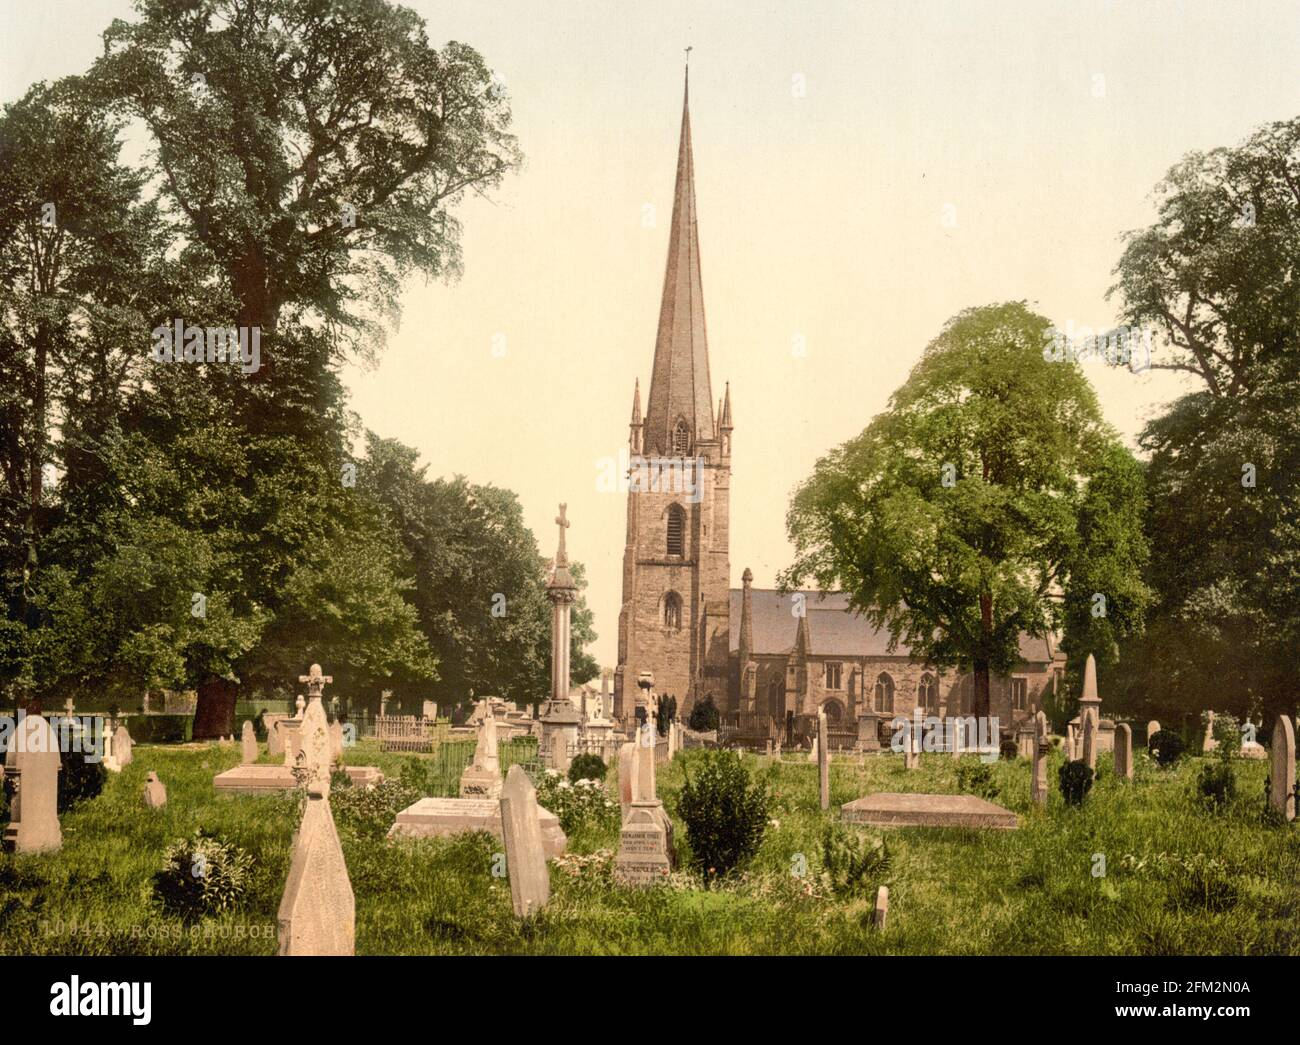 Église Sainte-Marie, Ross-on-Wye, Herefordshire vers 1890-1900 Banque D'Images